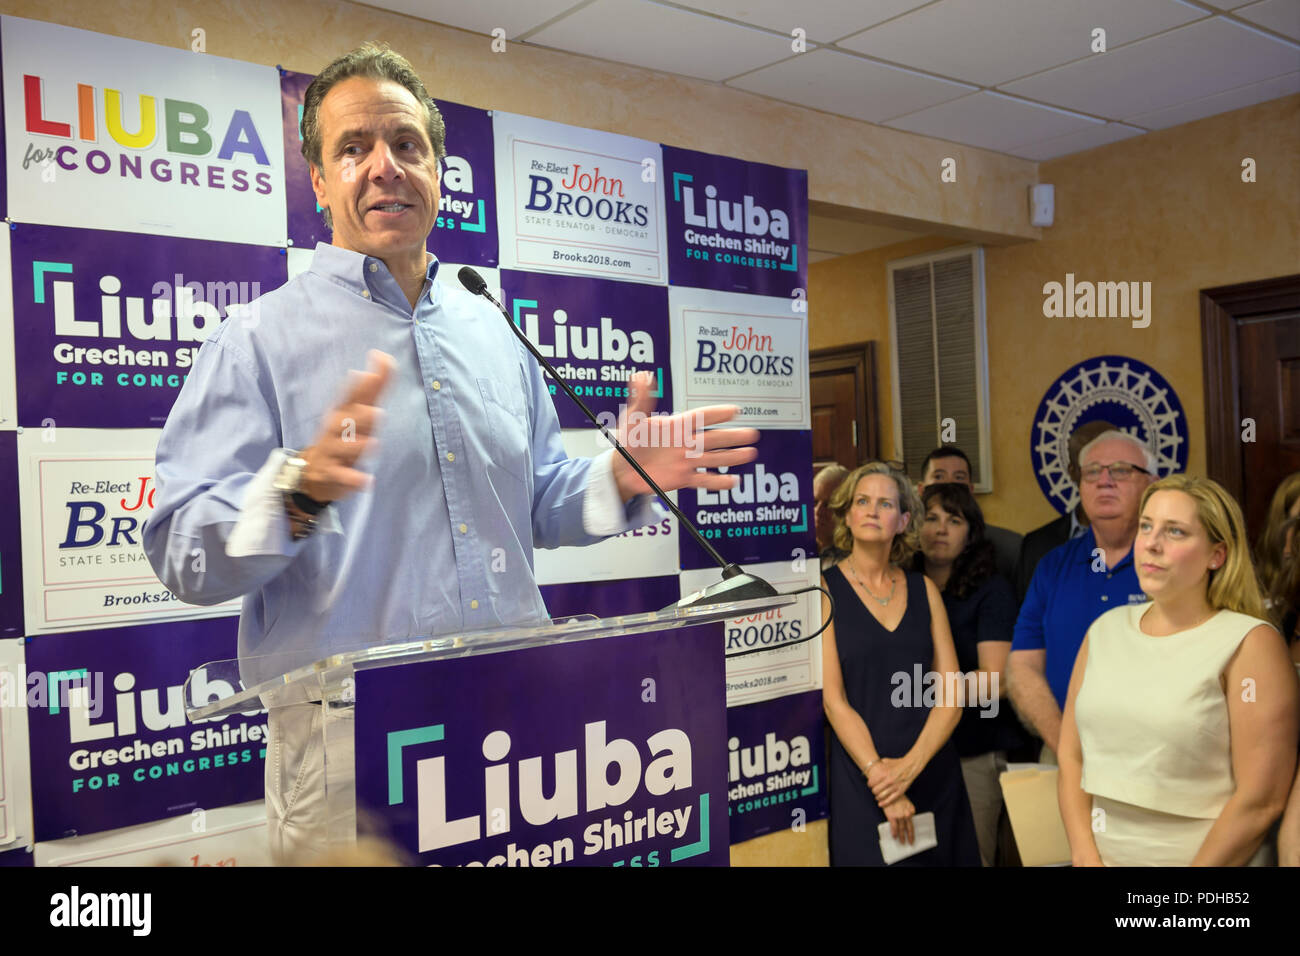 Massapequa, New York, USA. 5th Aug, 2018. L-R, Governor ANDREW CUOMO speaks at podium and endorses candidates, as LAURA CURRAN, Nassau County Executive; NY Senator JOHN BROOKS; and LIUBA GRECHEN SHIRLEY, Congressional candidate for NY 2nd District; and supporters listen at joint campaign office opening, aiming for a Democratic Blue Wave in November midterm elections. Credit: Ann Parry/ZUMA Wire/Alamy Live News - Stock Image